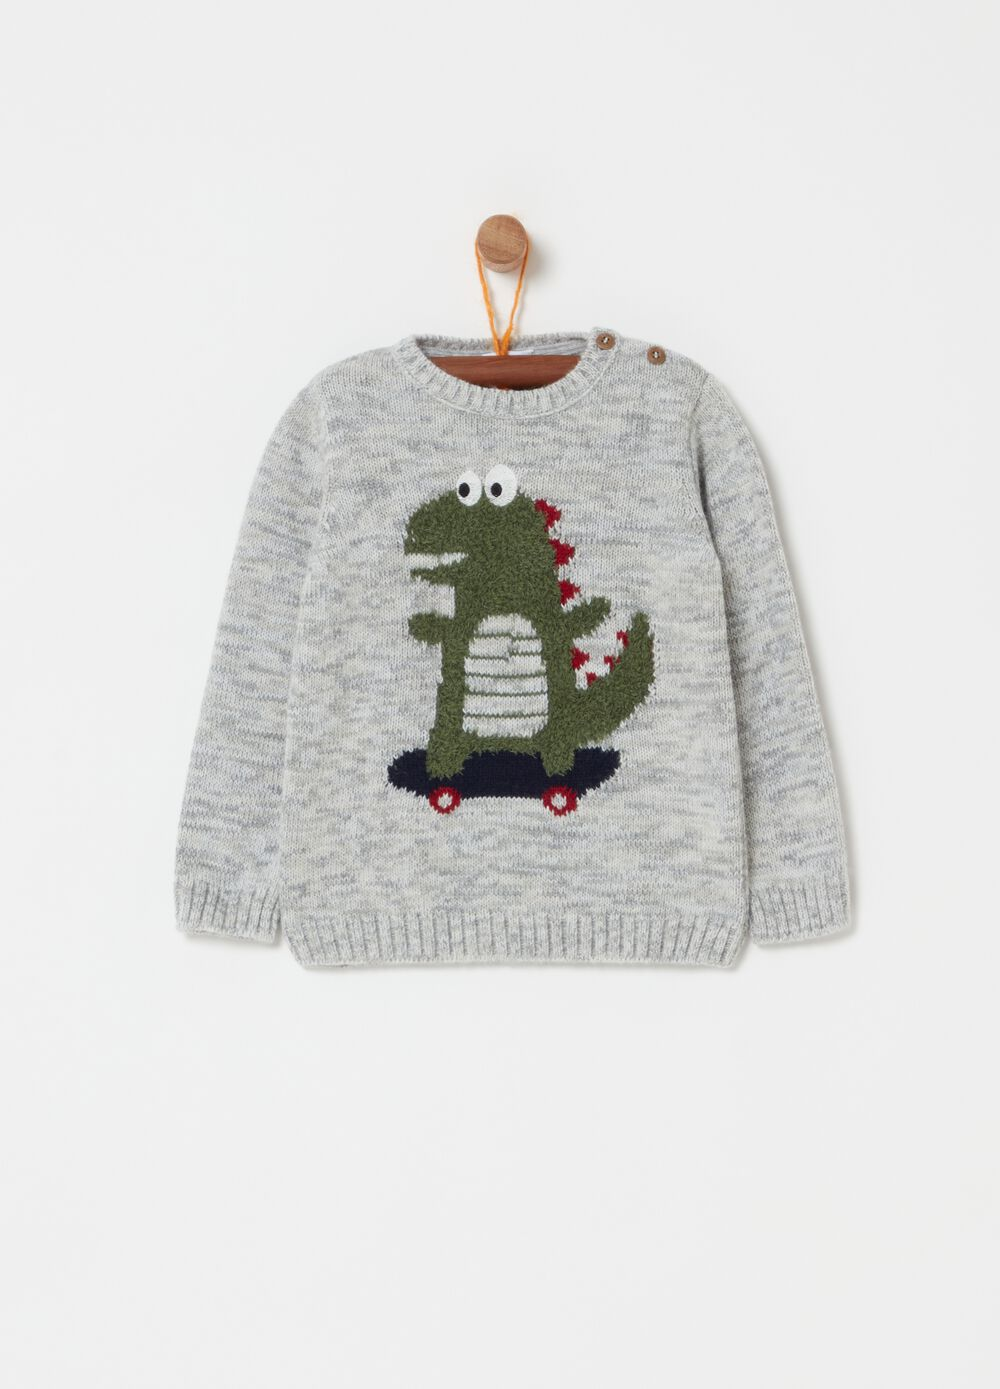 Mélange pullover with dinosaur embroidery